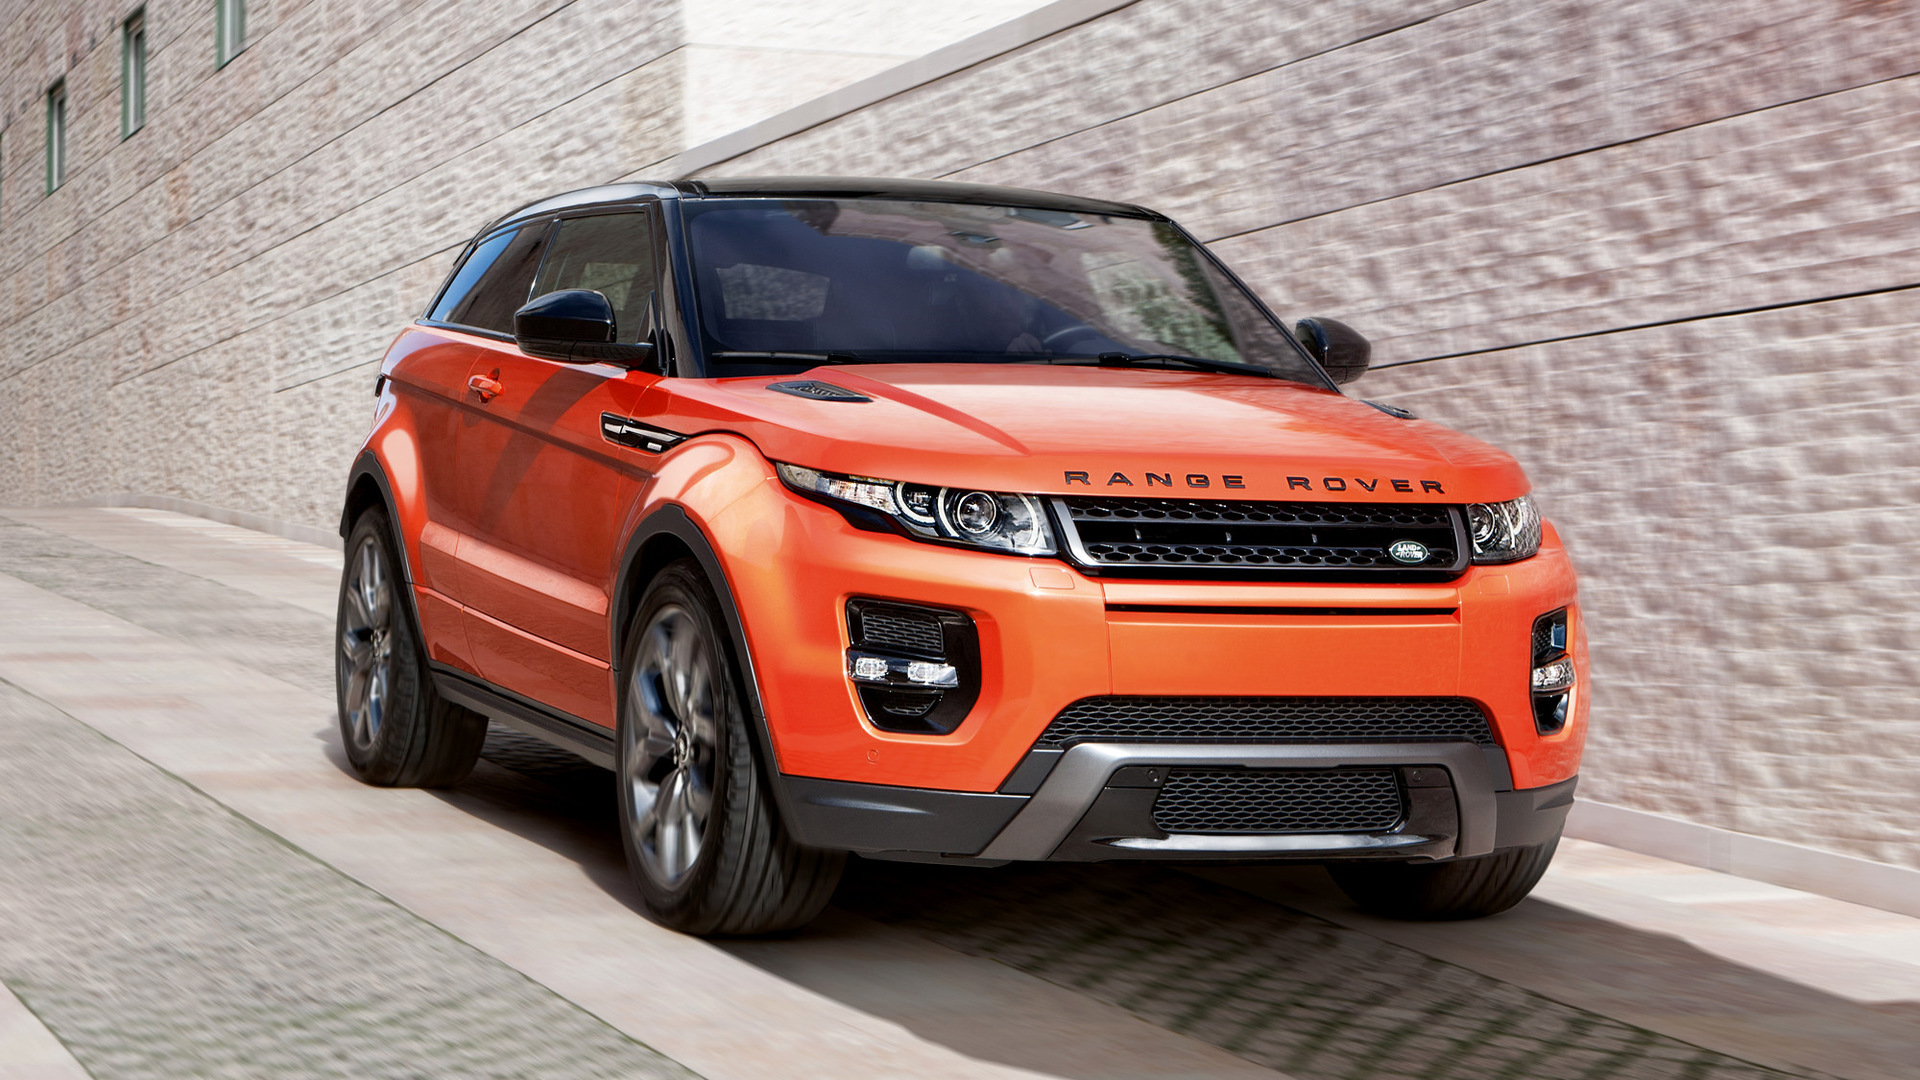 2014 Range Rover Evoque Coupe Autobiography Dynamic